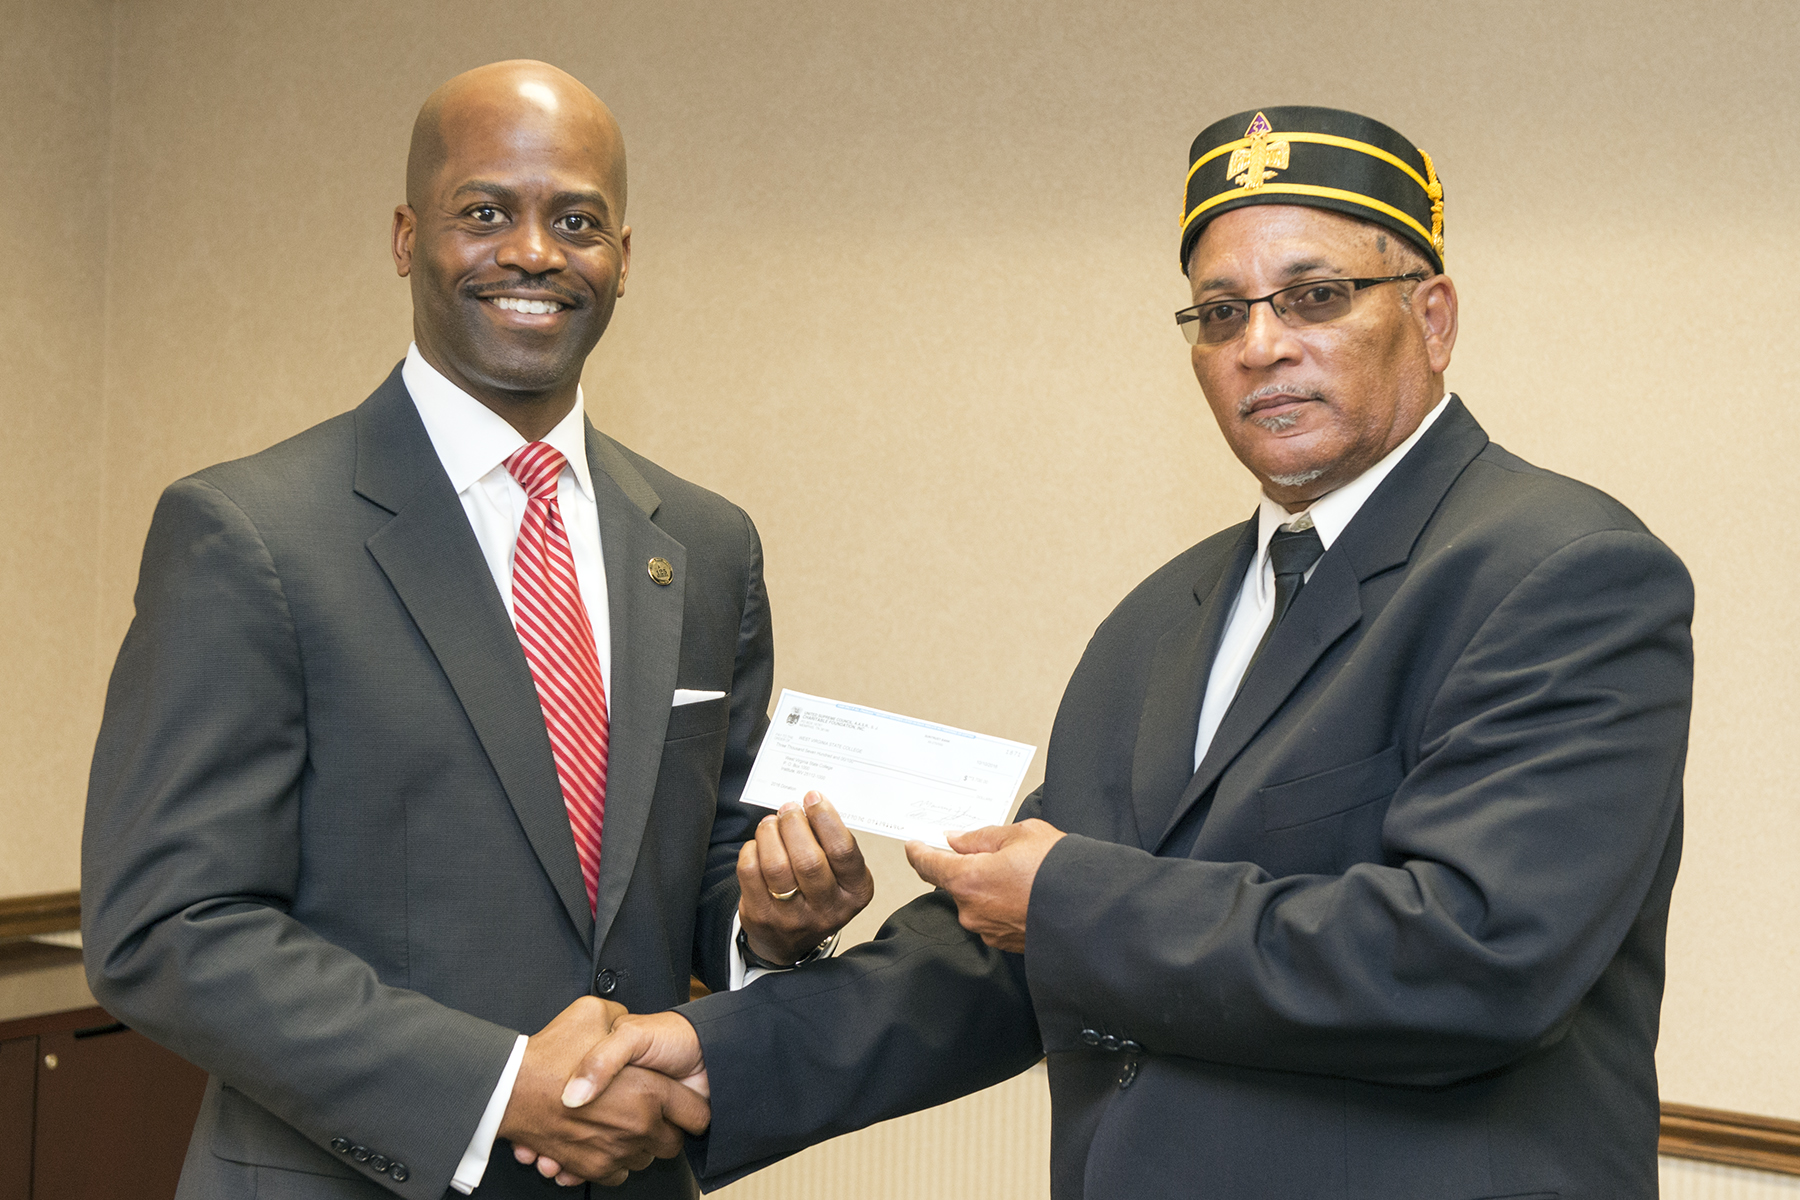 President Jenkins receives a donation from Kenneth Hale and the Scottish Rite